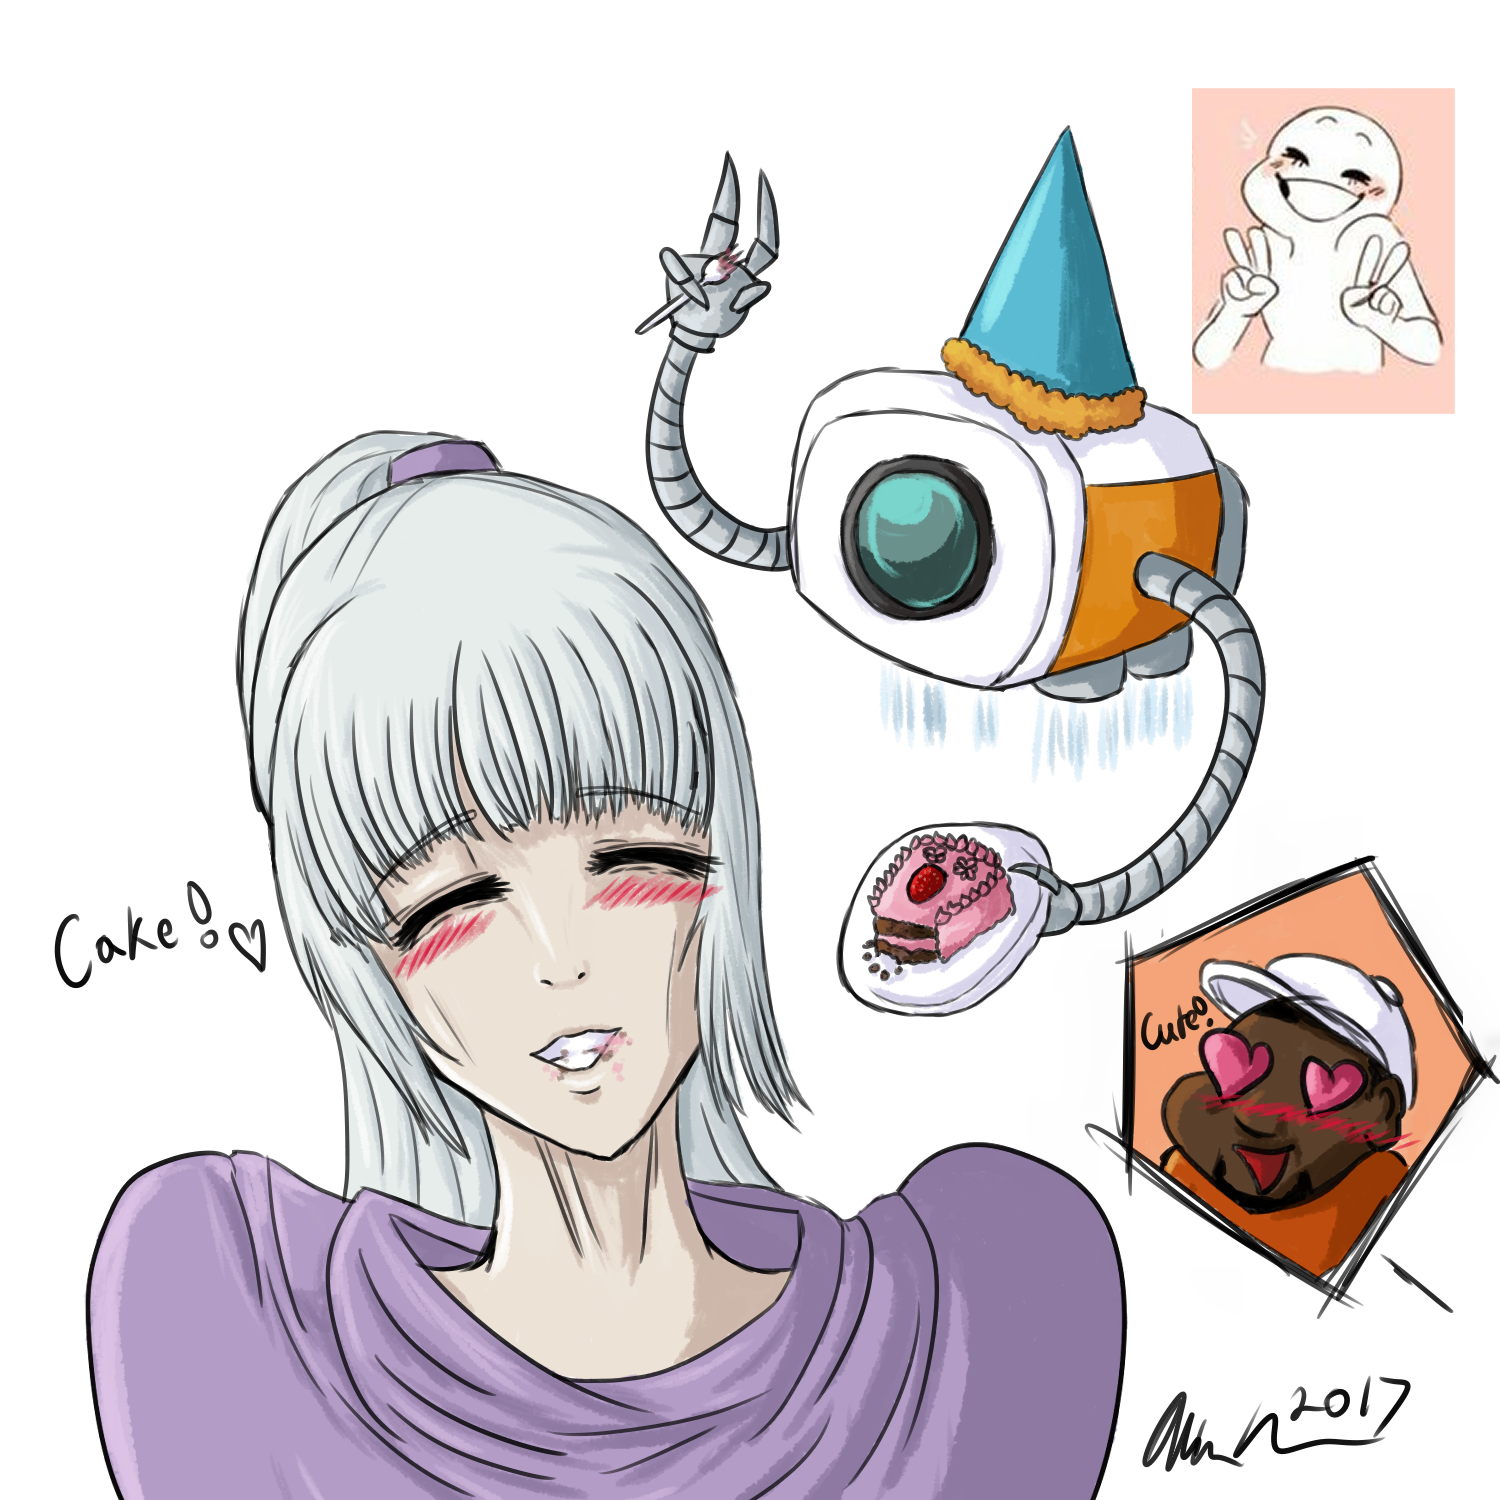 2d_sybil_is_pleased_by_artisticallystrange-db75itn.png